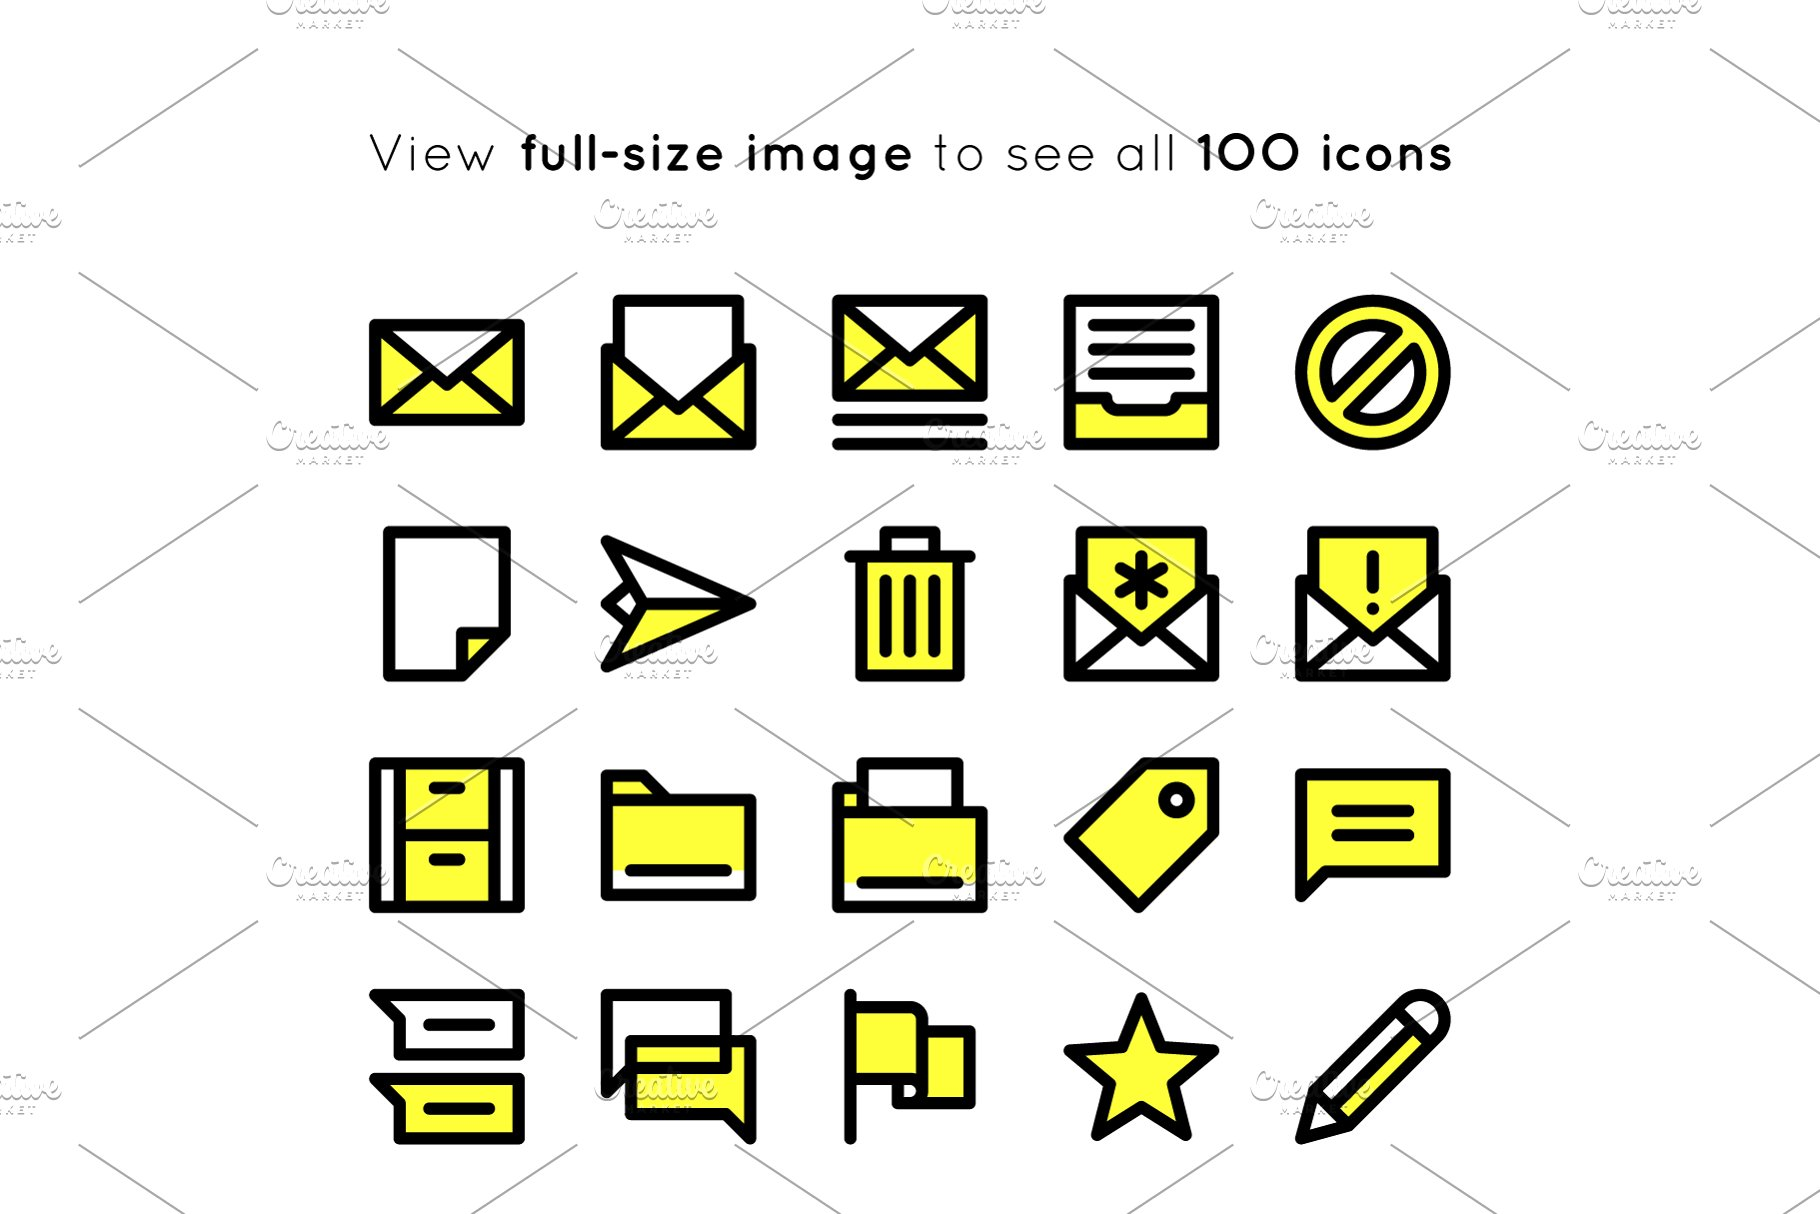 basic-icons-preview-shop-preview03-alt-.jpg